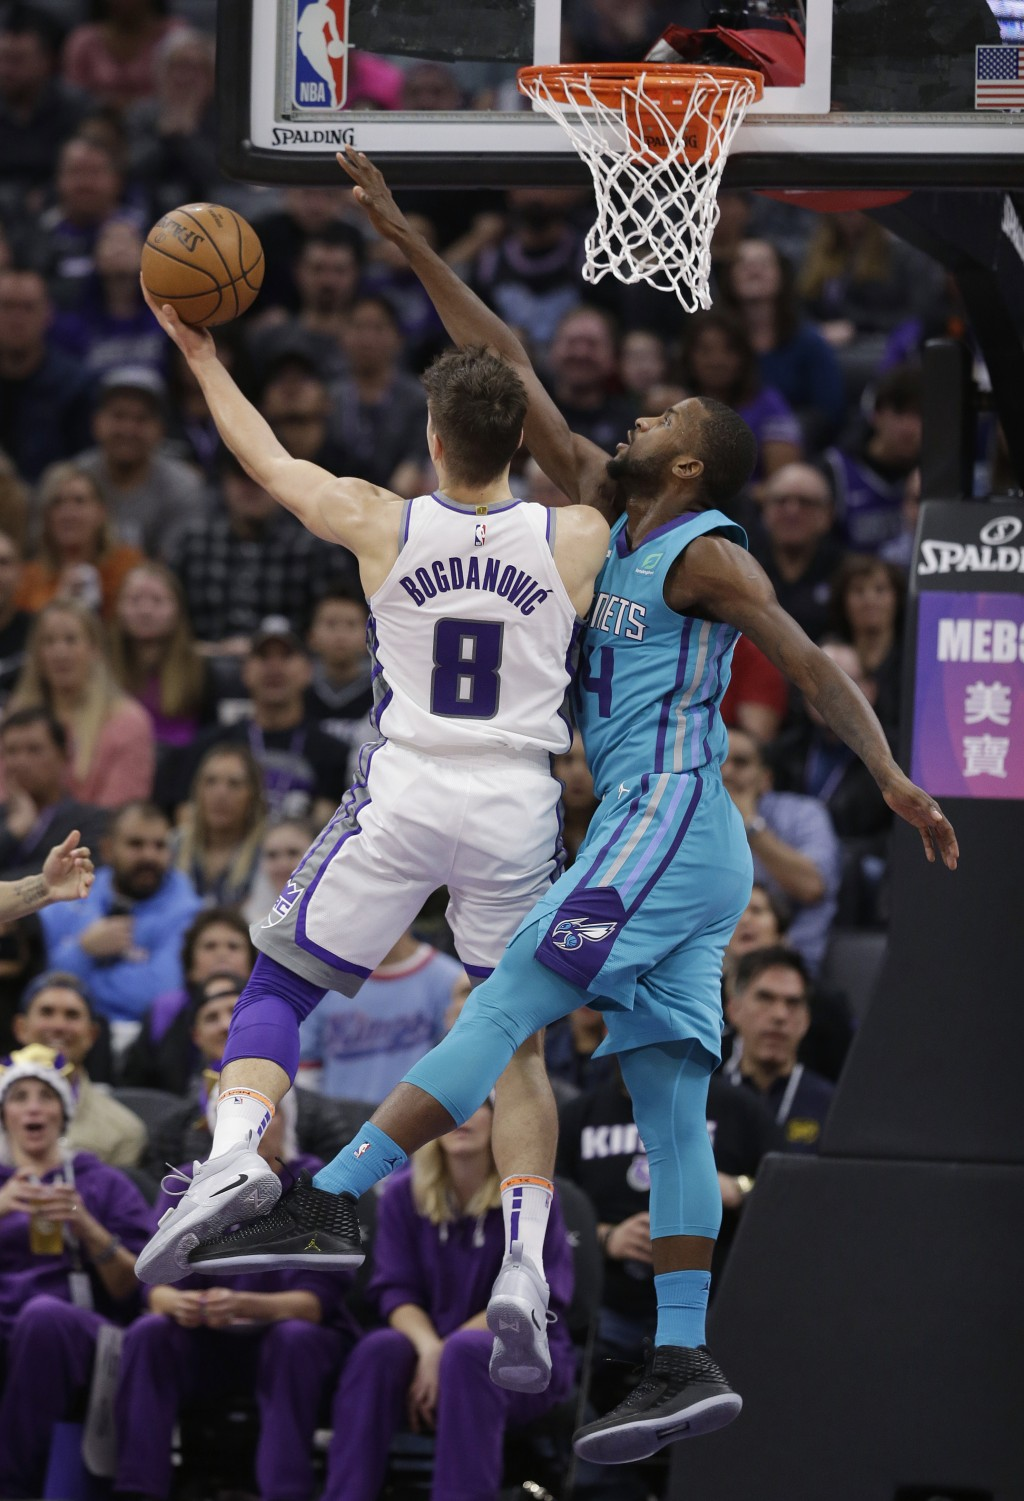 Sacramento Kings guard Bogdan Bogdanovic, right, goes to the basket against Charlotte Hornets forward Michael Kidd-Gilchrist during the first quarter